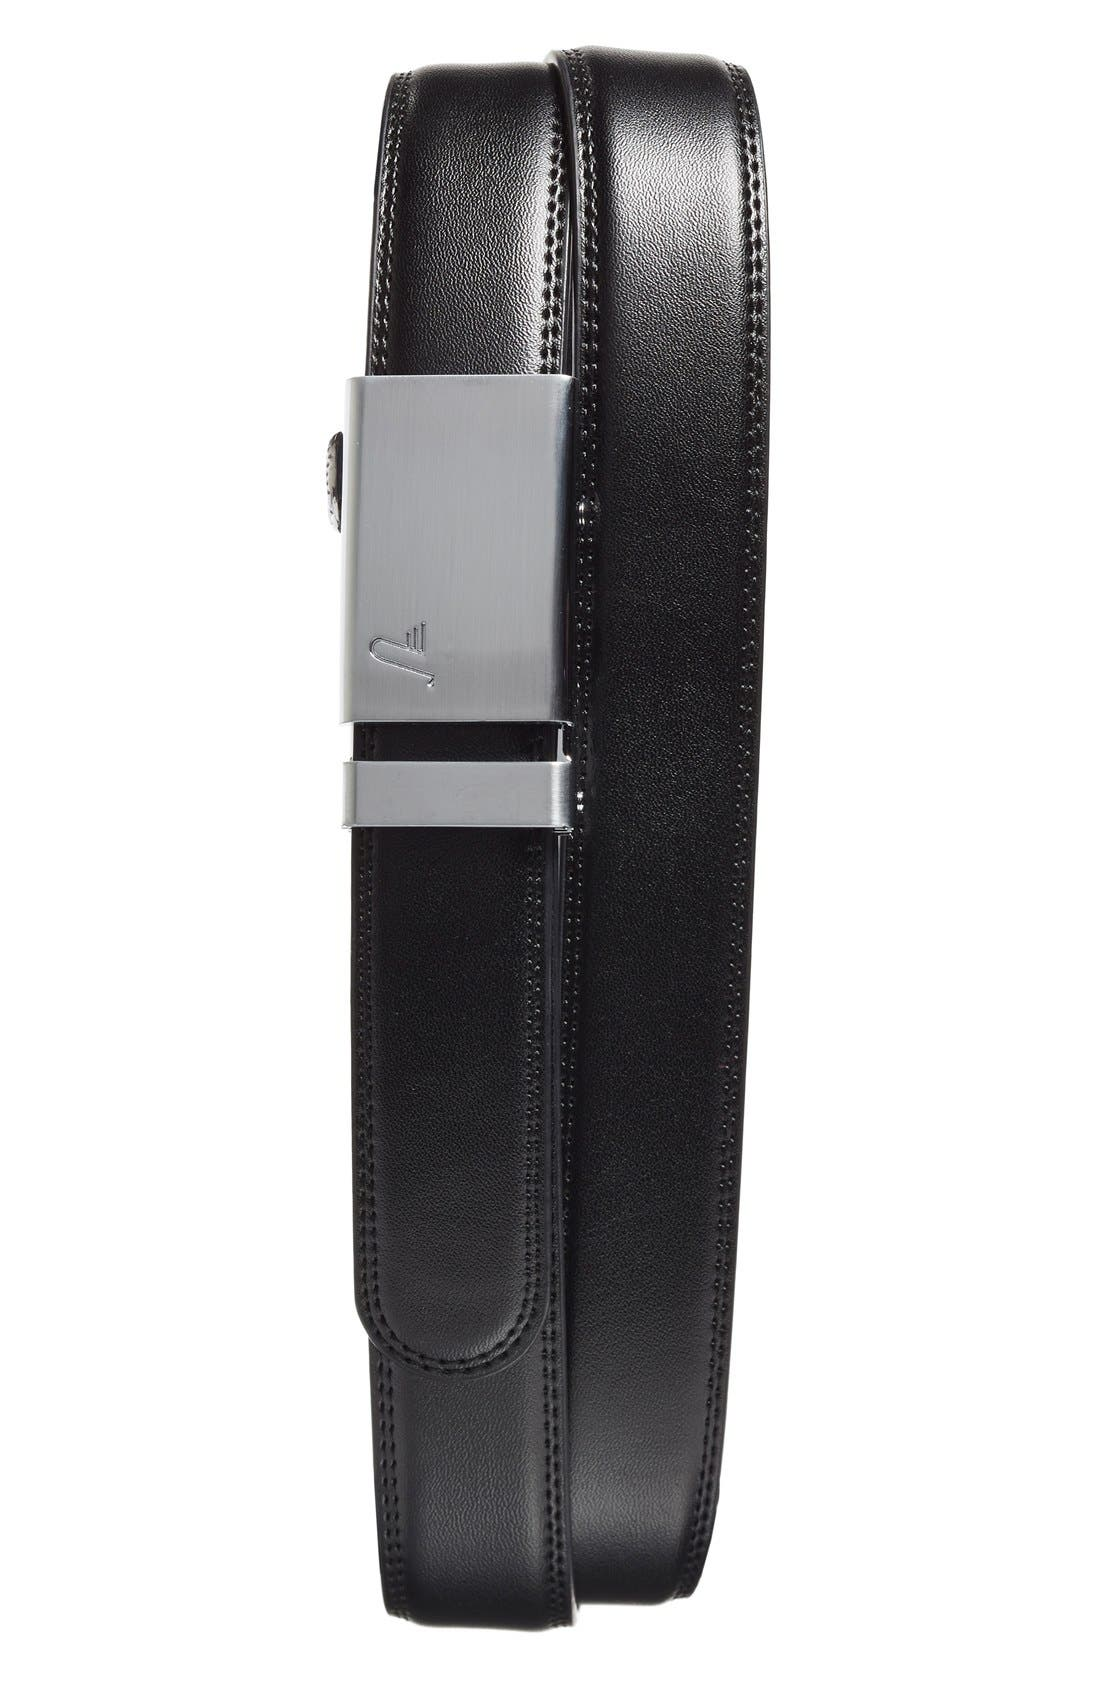 MISSION BELT Alloy Leather Belt